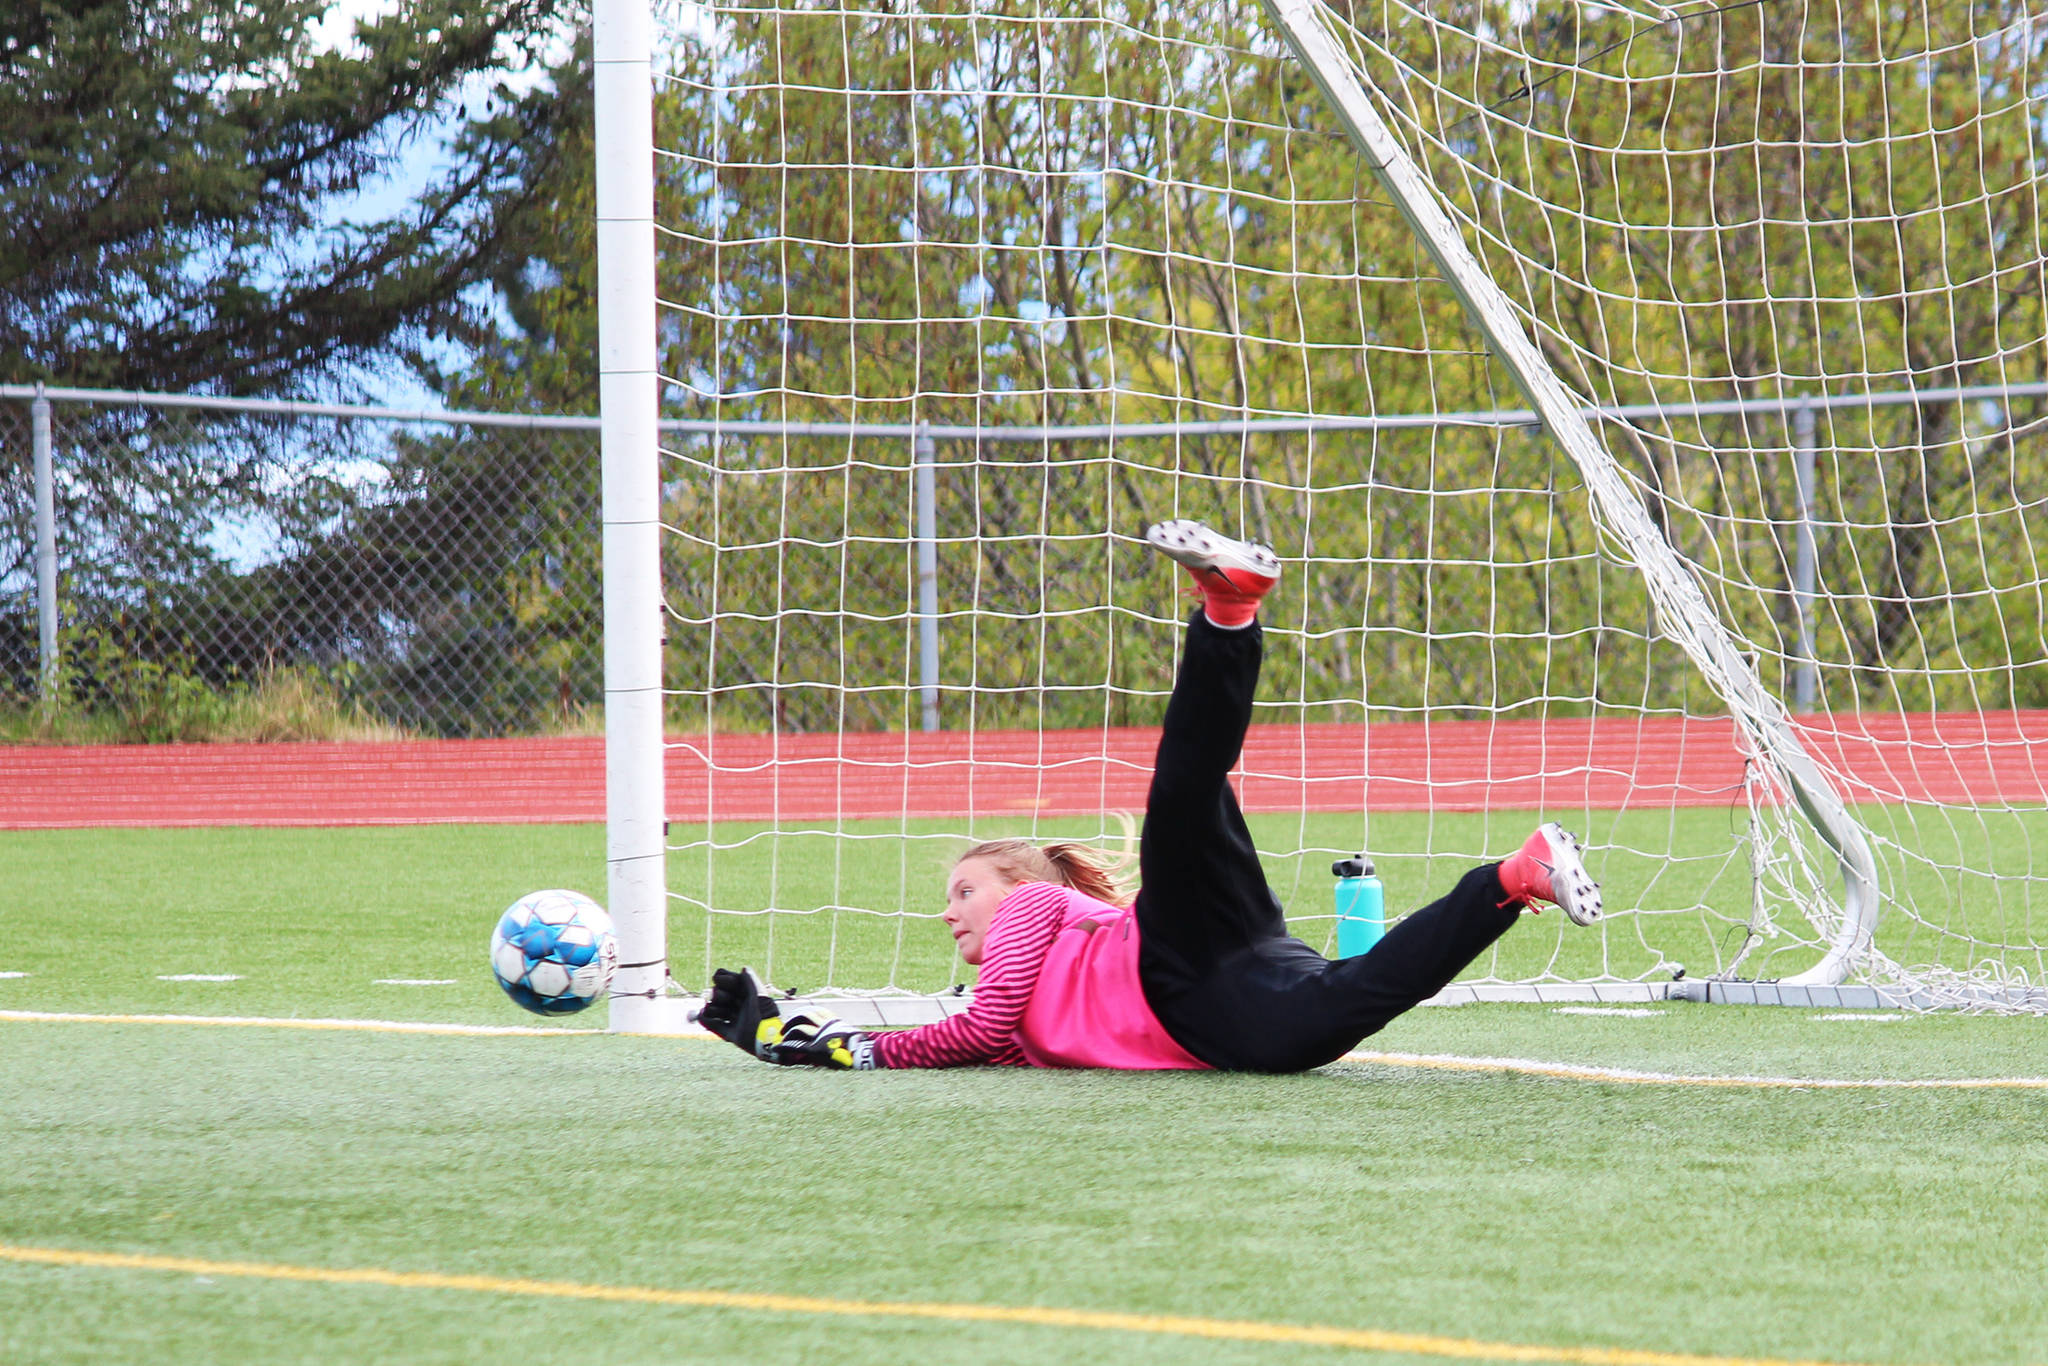 Kenai goalkeeper Kailey Hamilton dives for a ball on a penalty kick during the semi-final game of the Peninsula Conference Soccer Tournament on Friday, May 17, 2019 at Homer High School in Homer, Alaska. The game went into penalty kicks when the score remained tied after a regulation game and two halves of overtime. (Photo by Megan Pacer/Homer News)